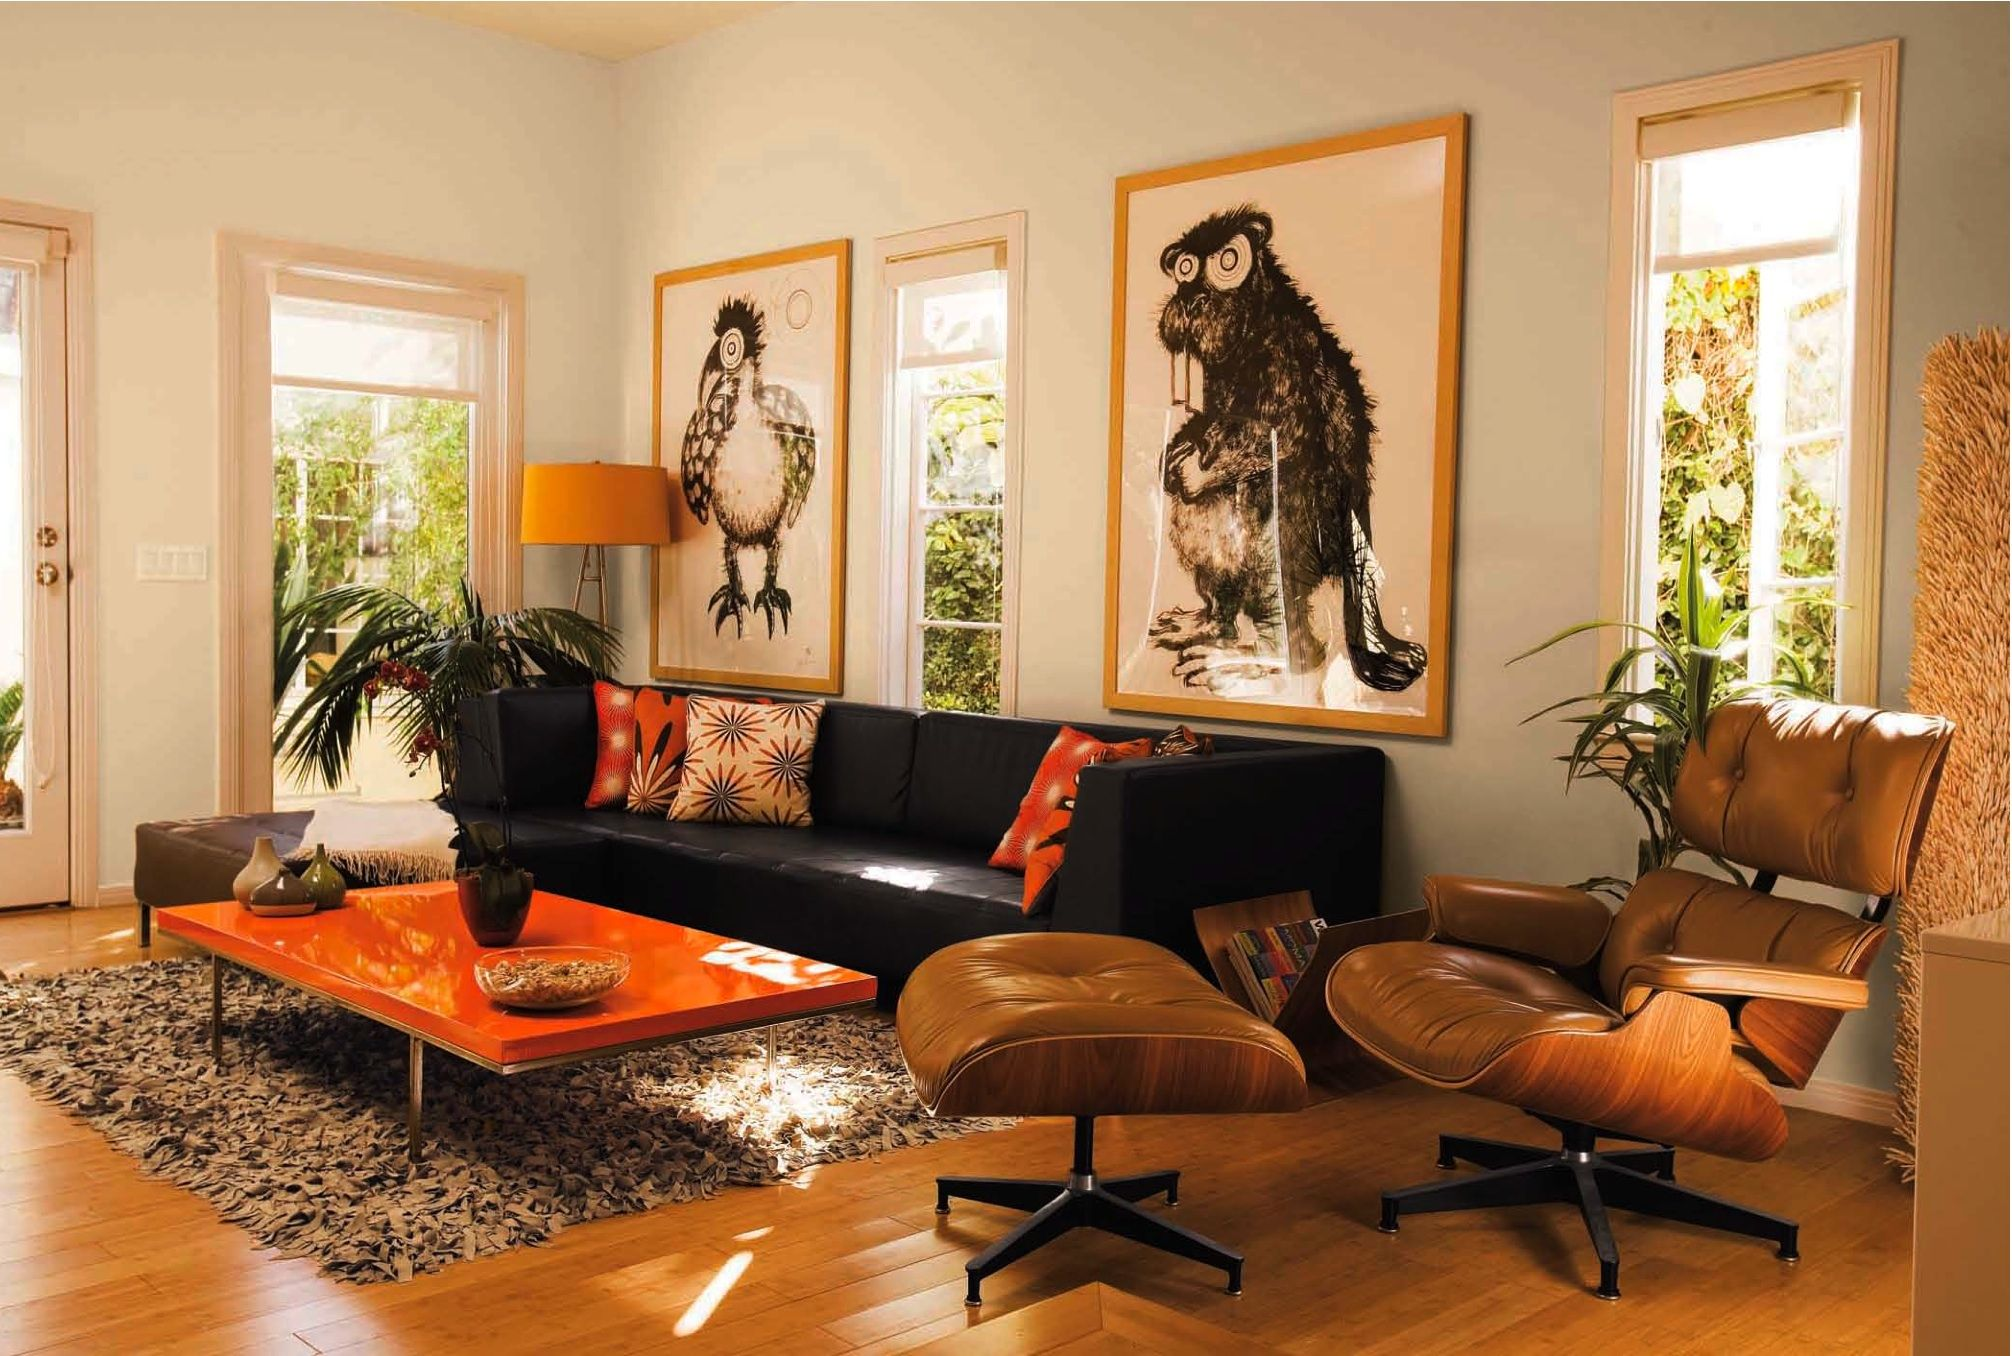 Living Room Ideas Orange Sofa dark brown couch, orange accents, side chair and ottaman, lamp and